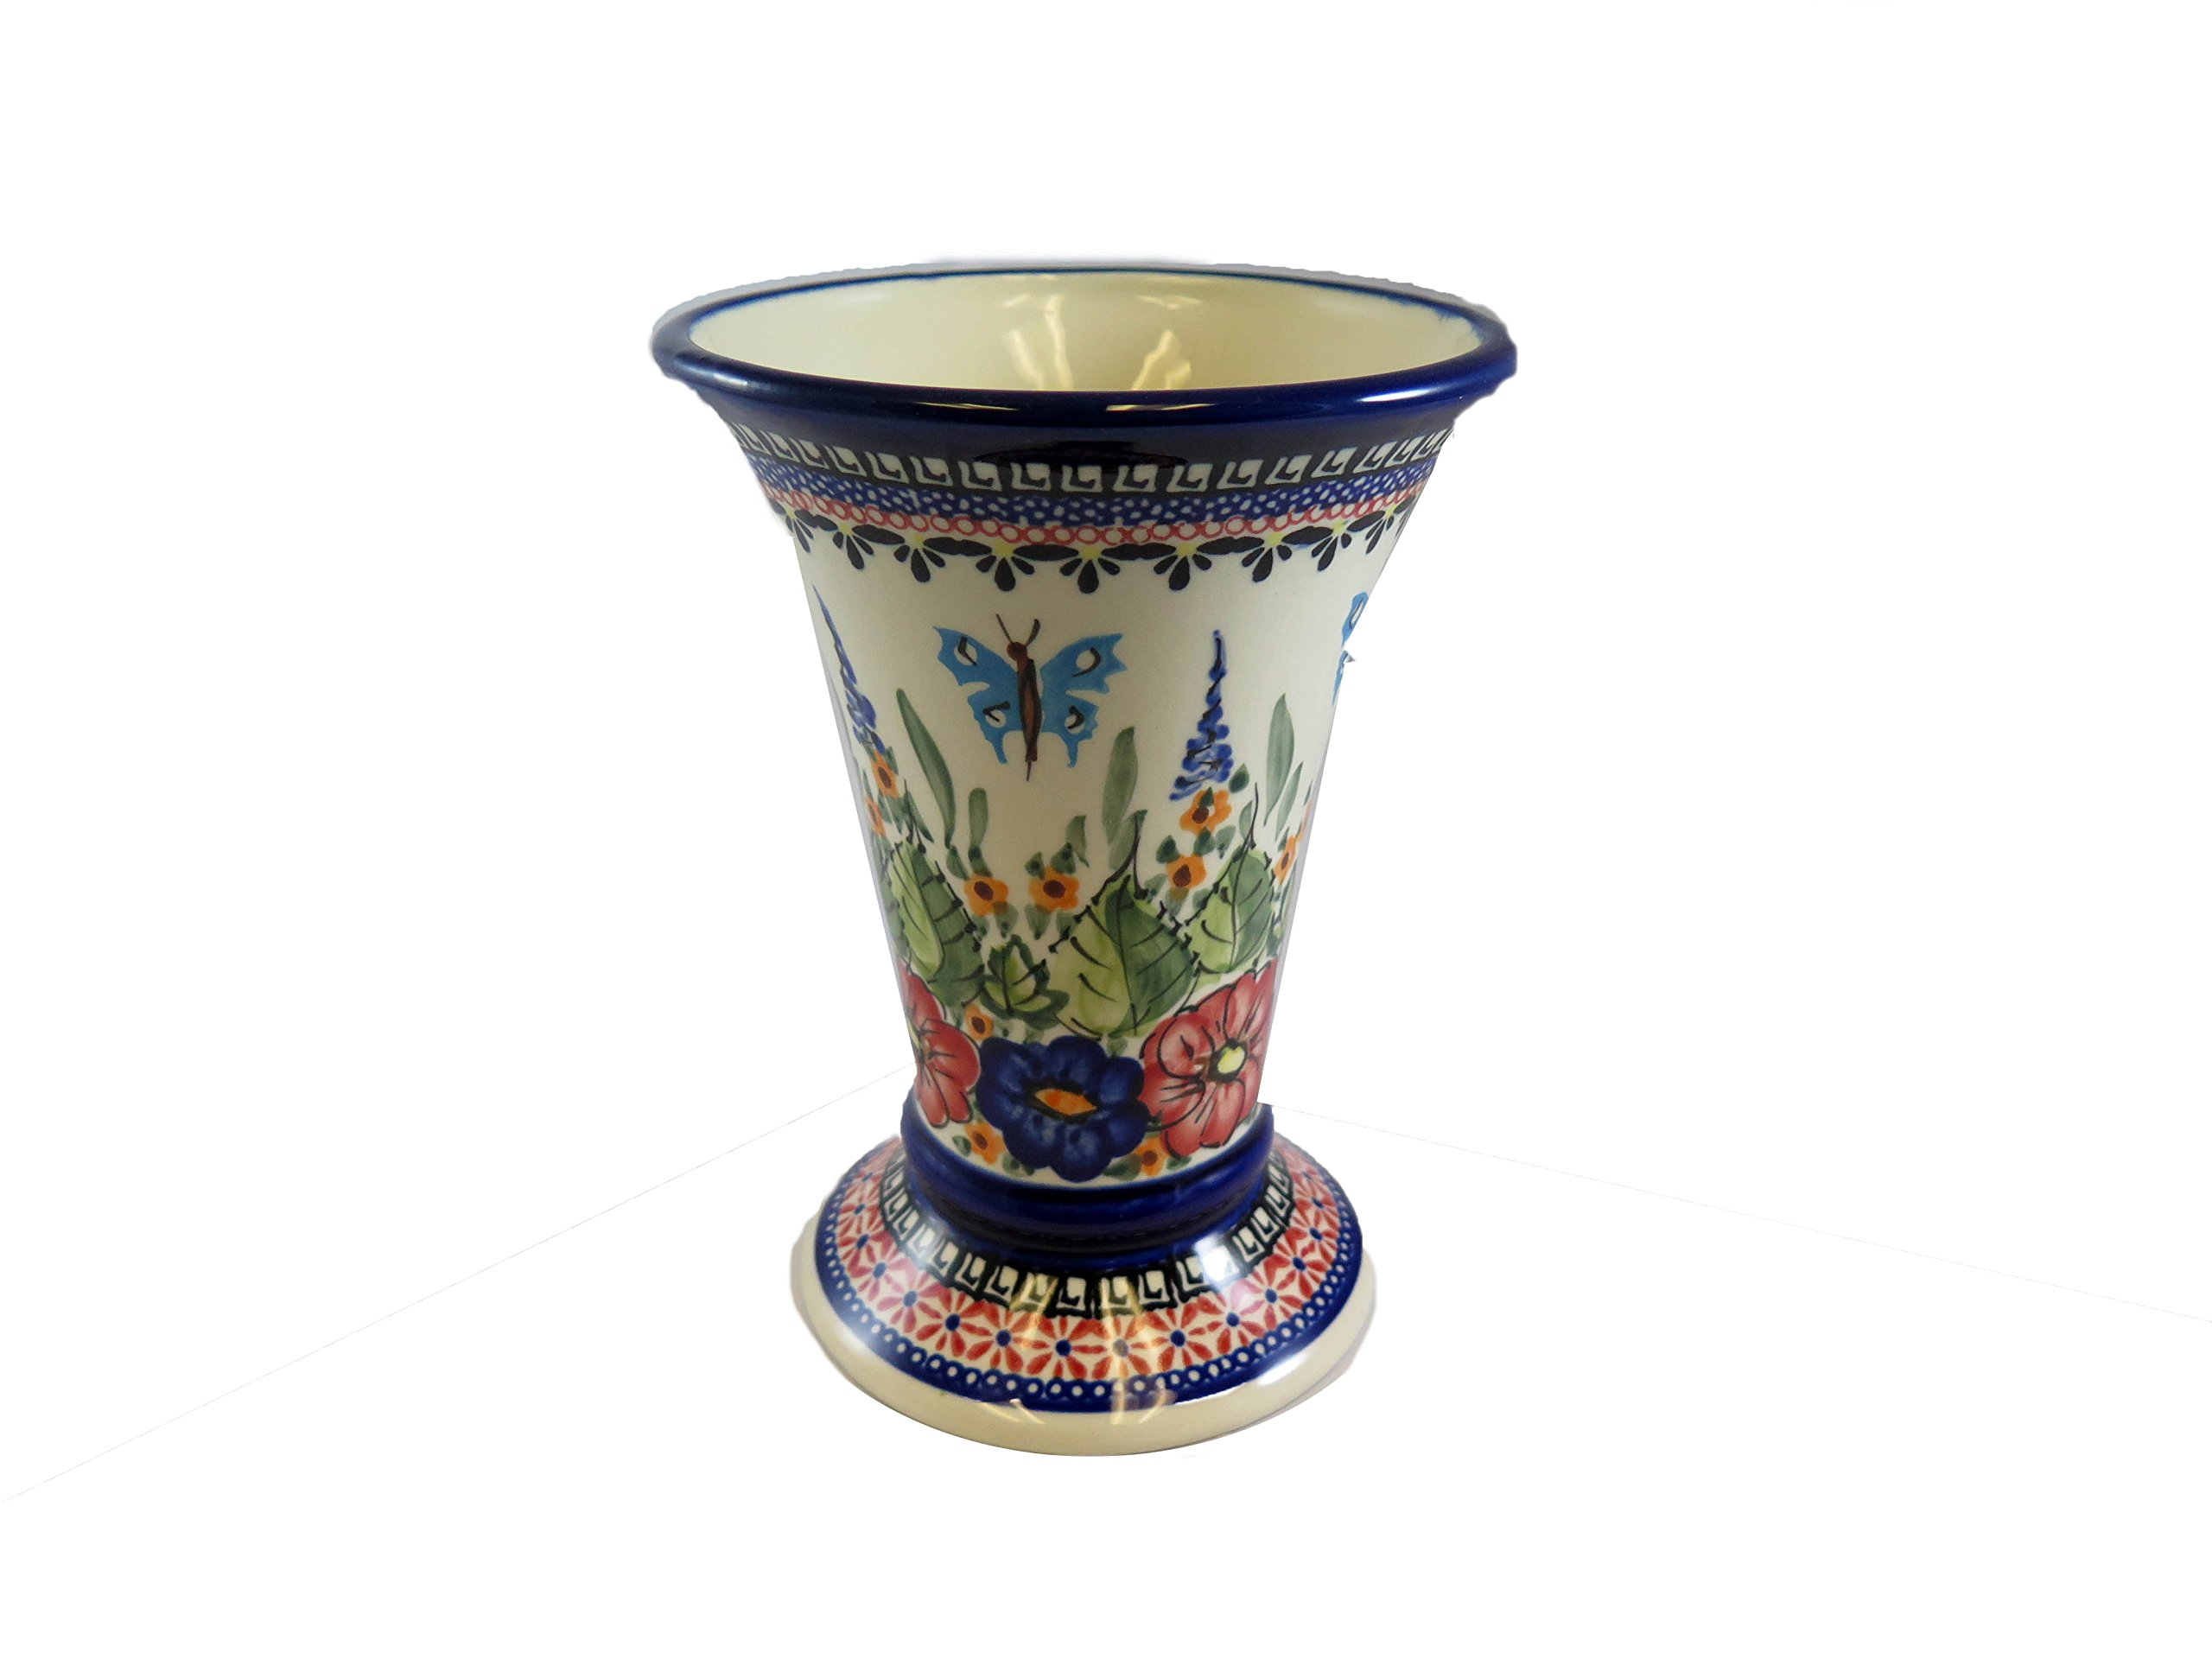 Polish Pottery Tall Vase, 7.7 inches Tall x 5.5 inches at The top